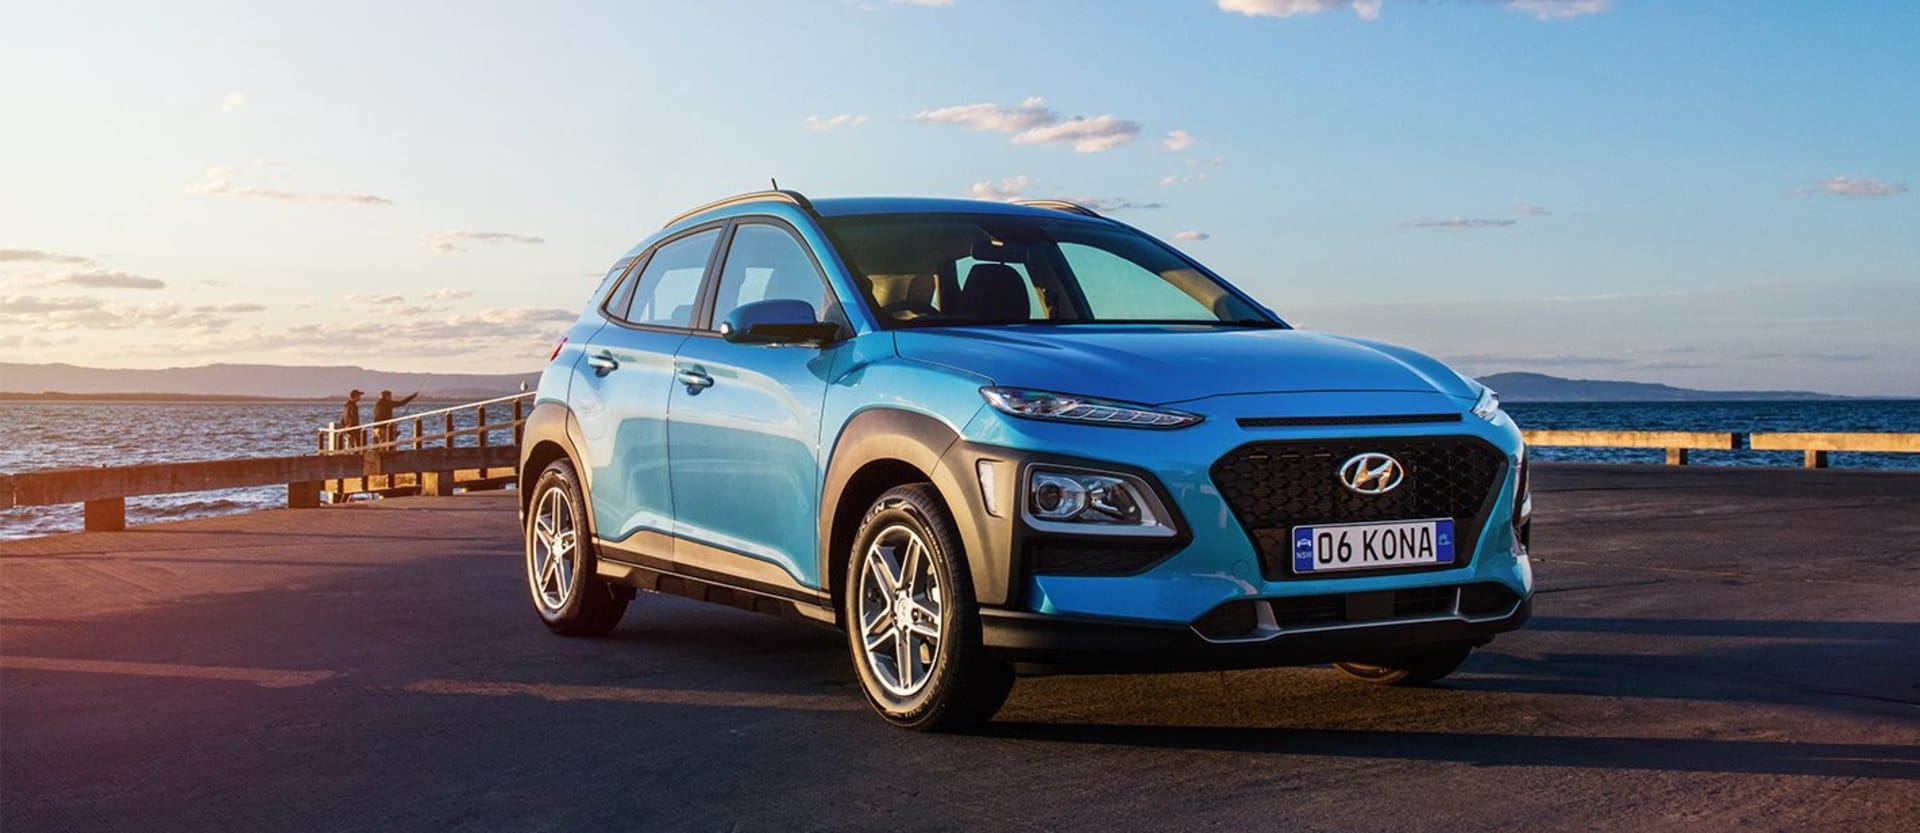 Hyundai Kona Active 2.0 quick review